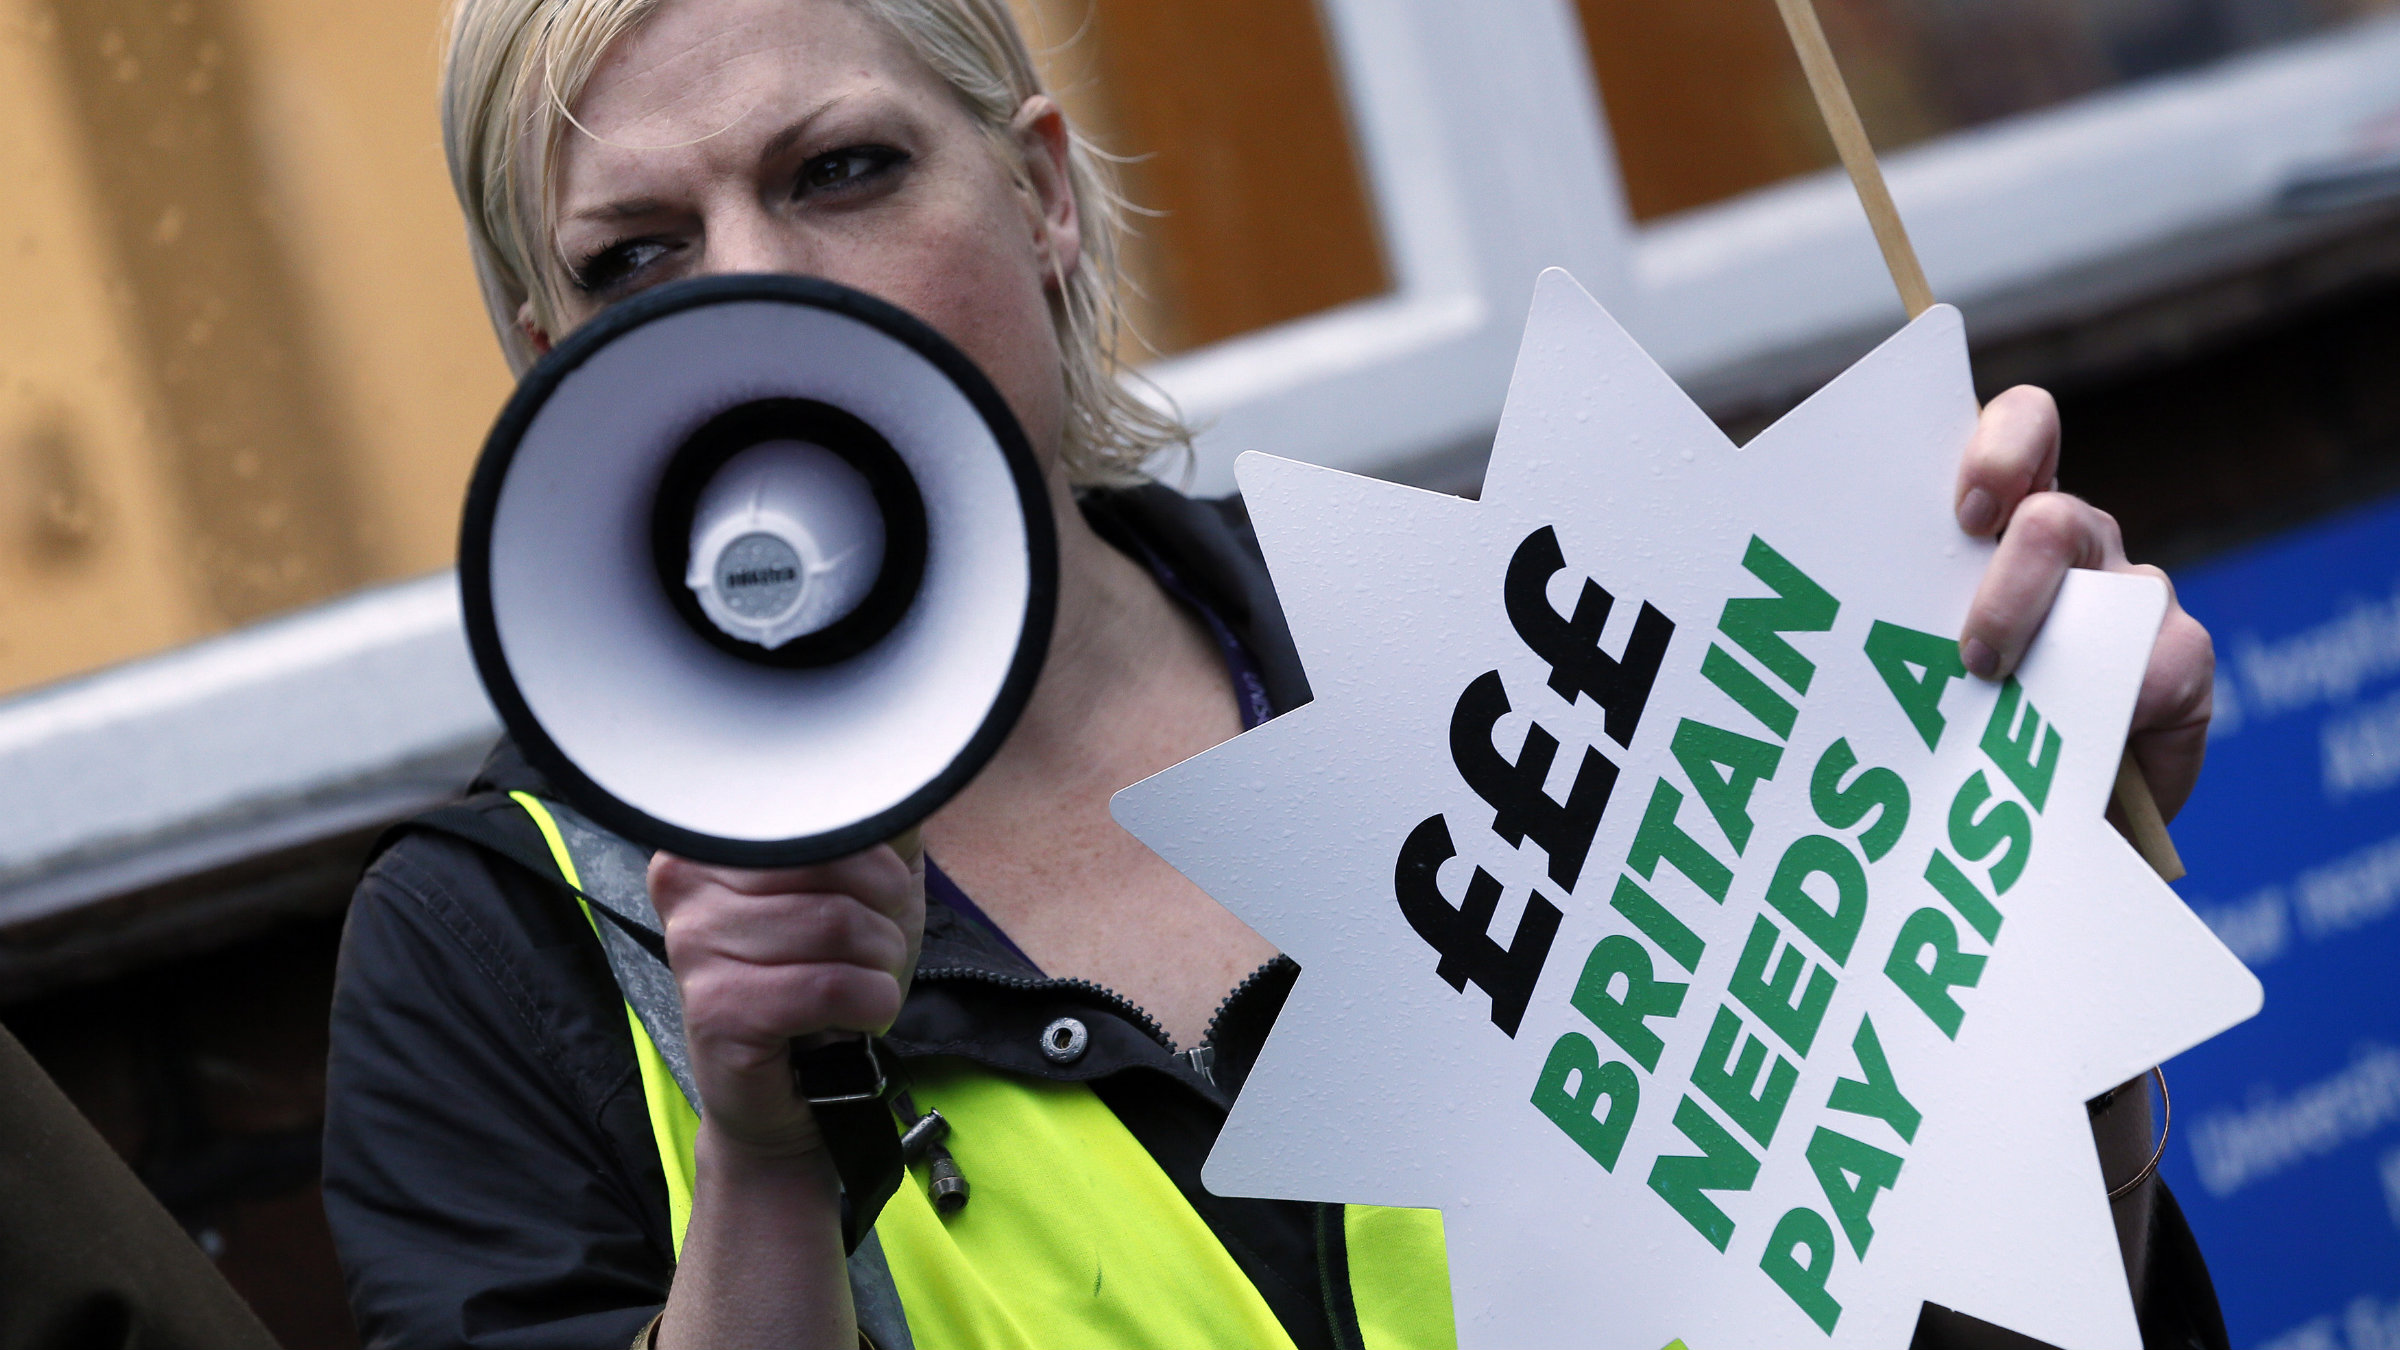 An NHS worker holds a placard and shouts through a megaphone during a strike, outside St Pancras Hospital in London October 13, 2014.